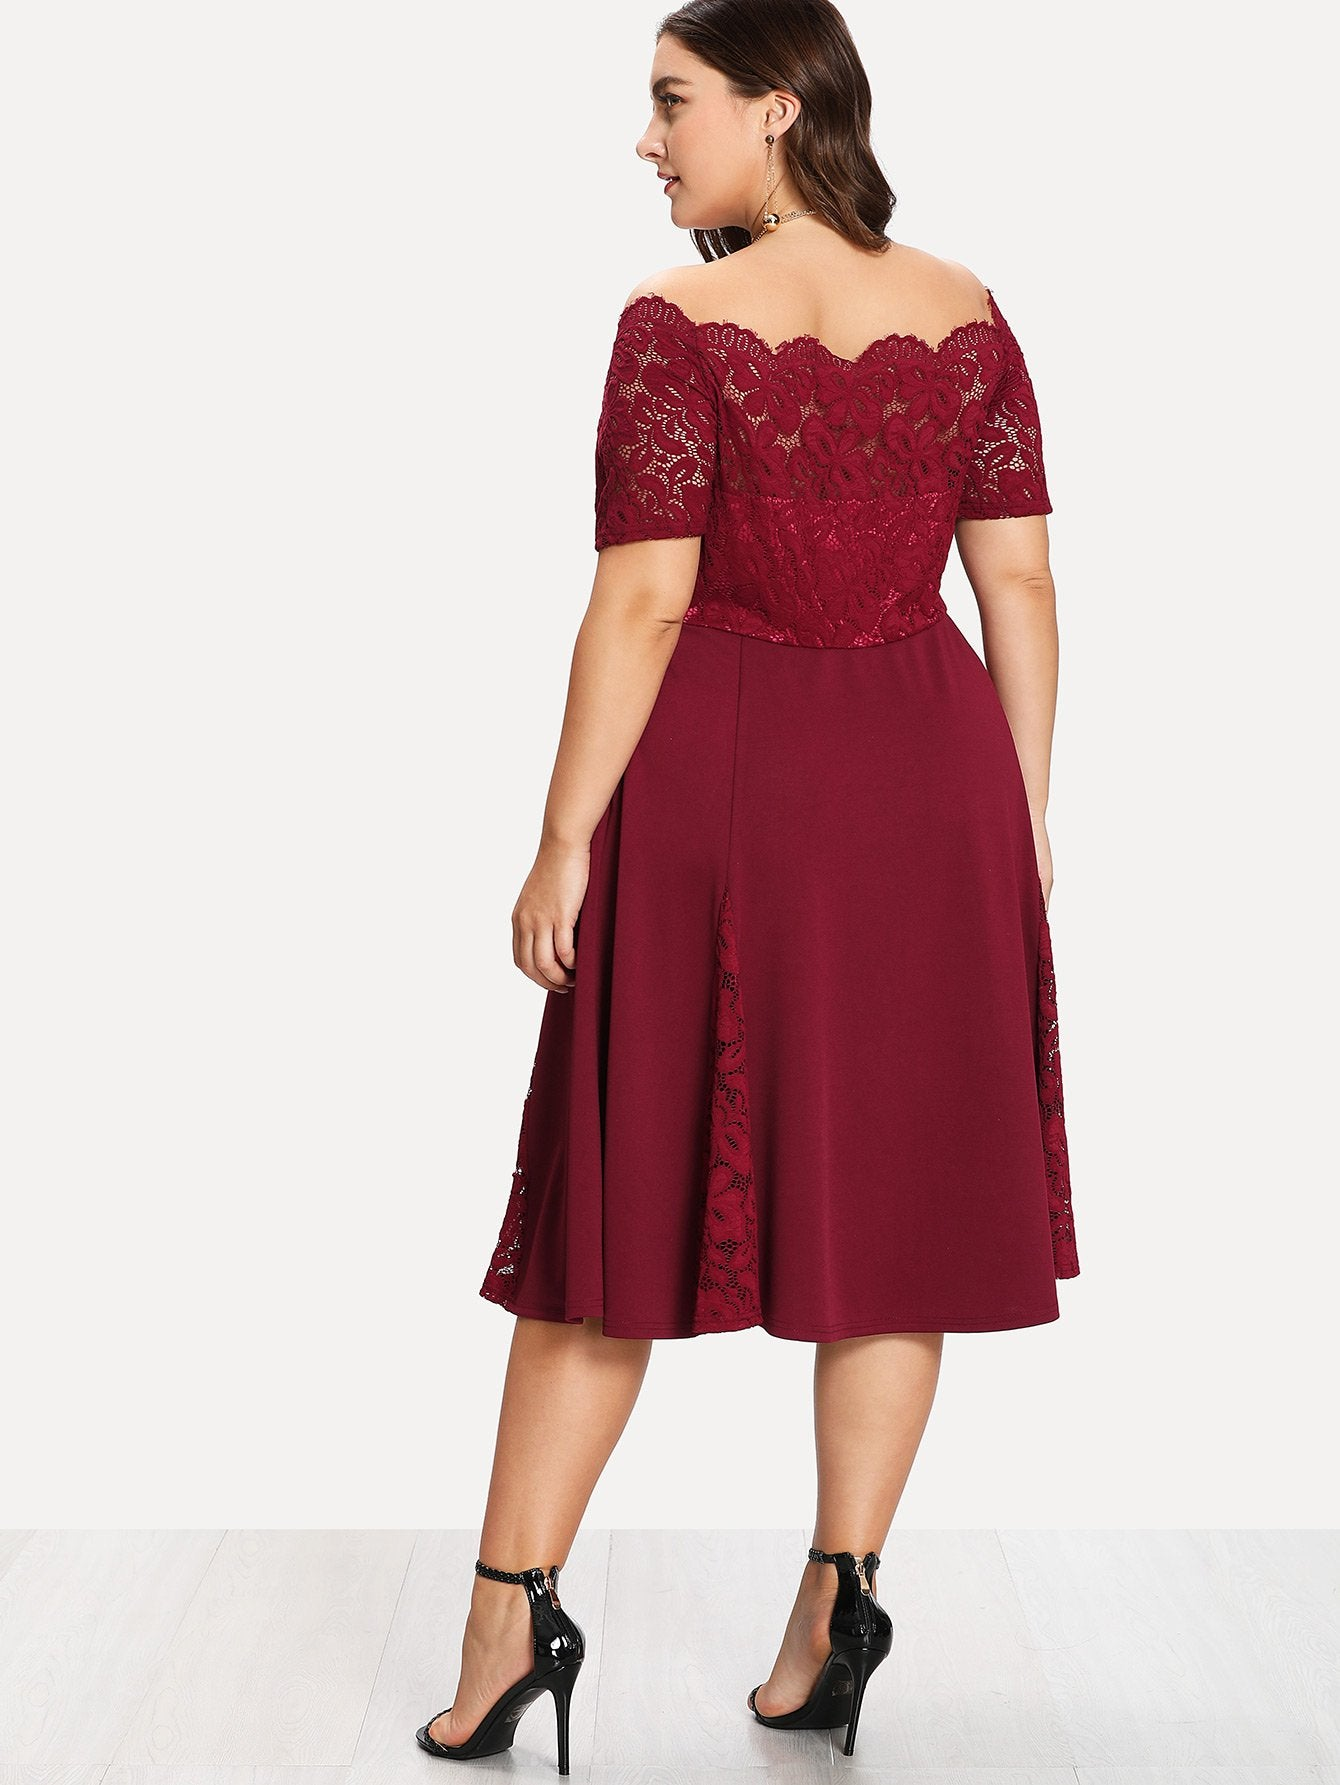 Plus Size Burgundy Lace Bodice Fit & Flare Dress